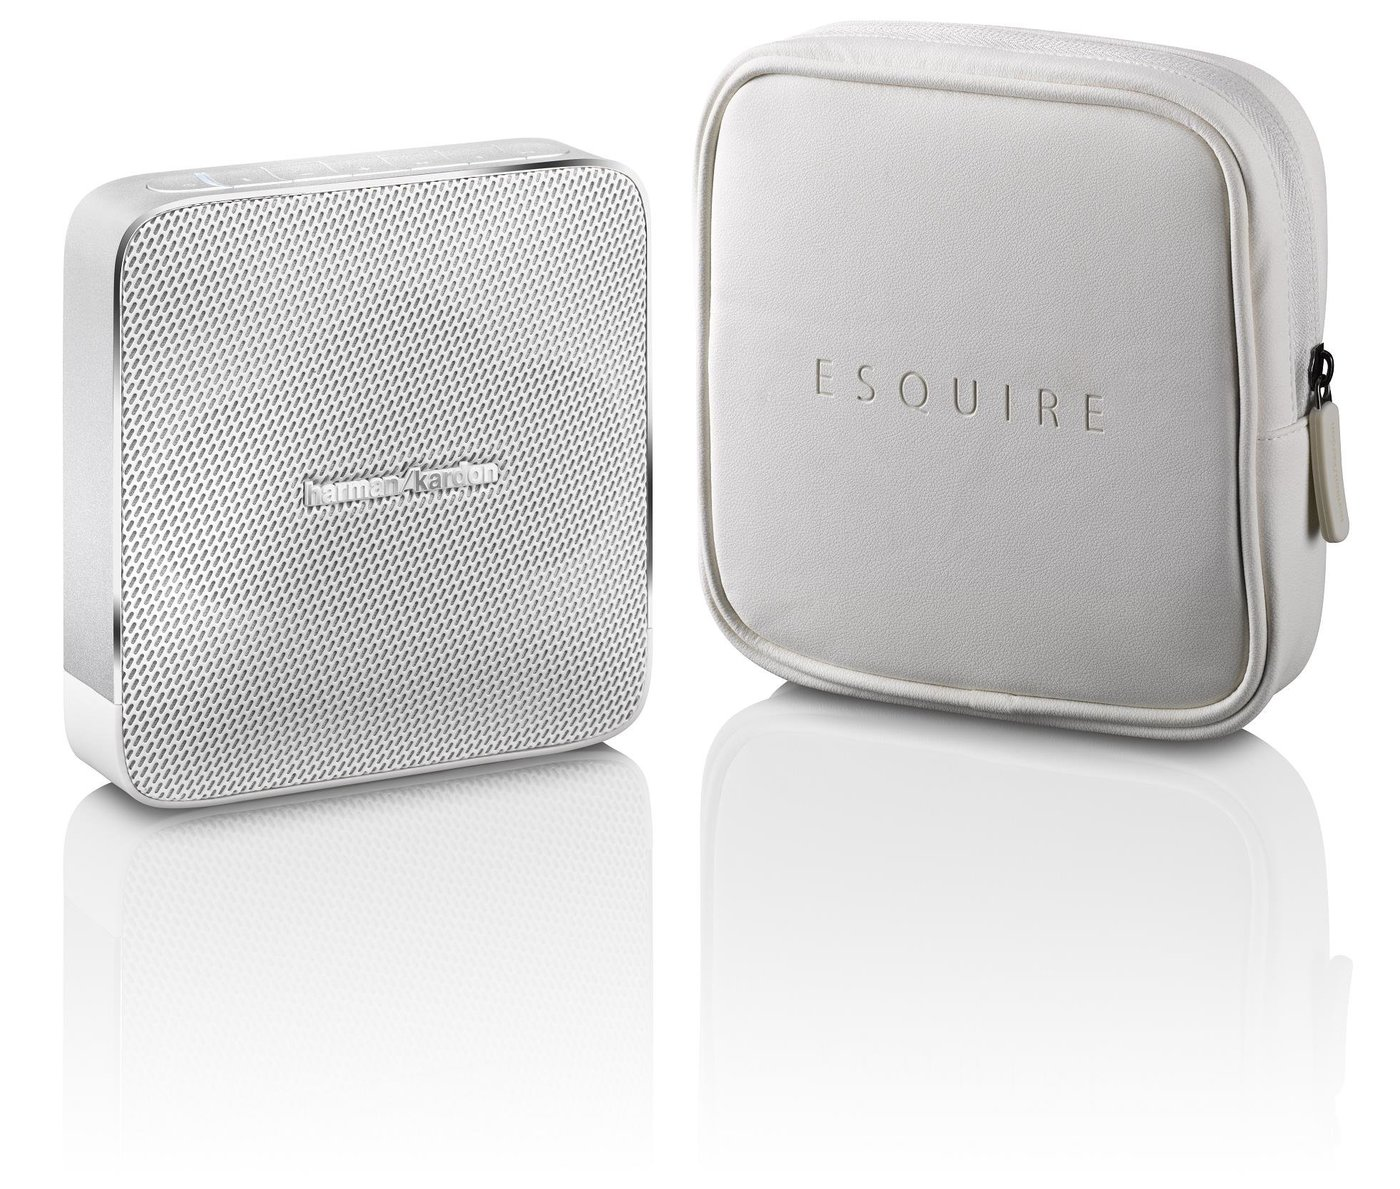 harman kardon esquire wireless speaker white check. Black Bedroom Furniture Sets. Home Design Ideas